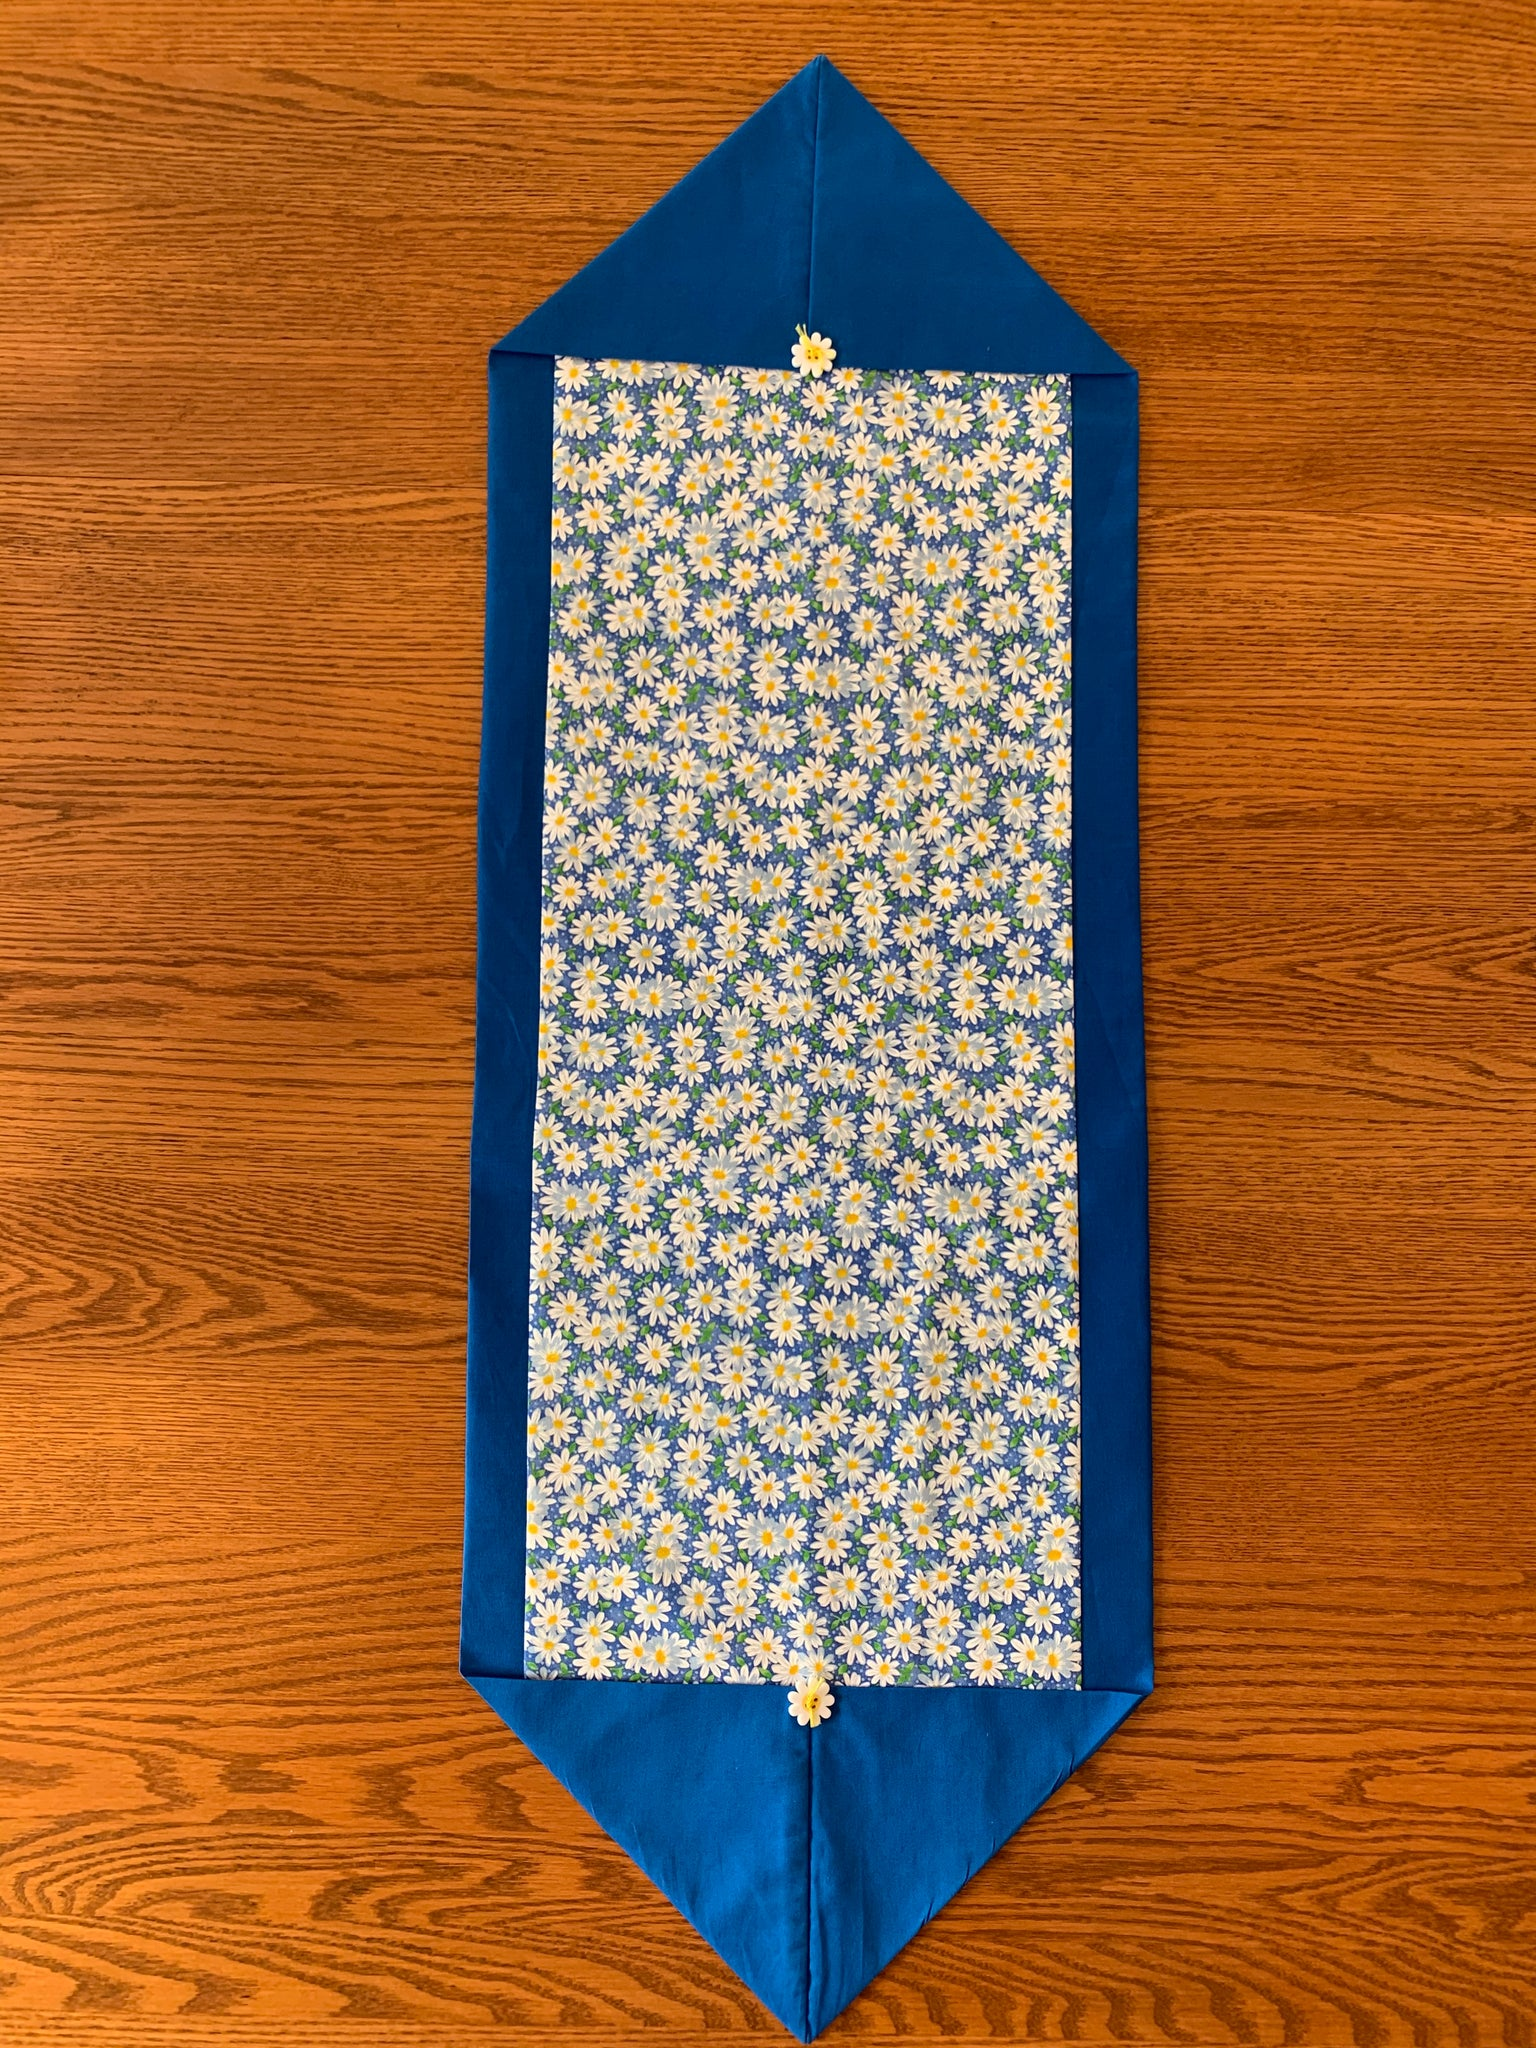 Handcrafted Table Runner